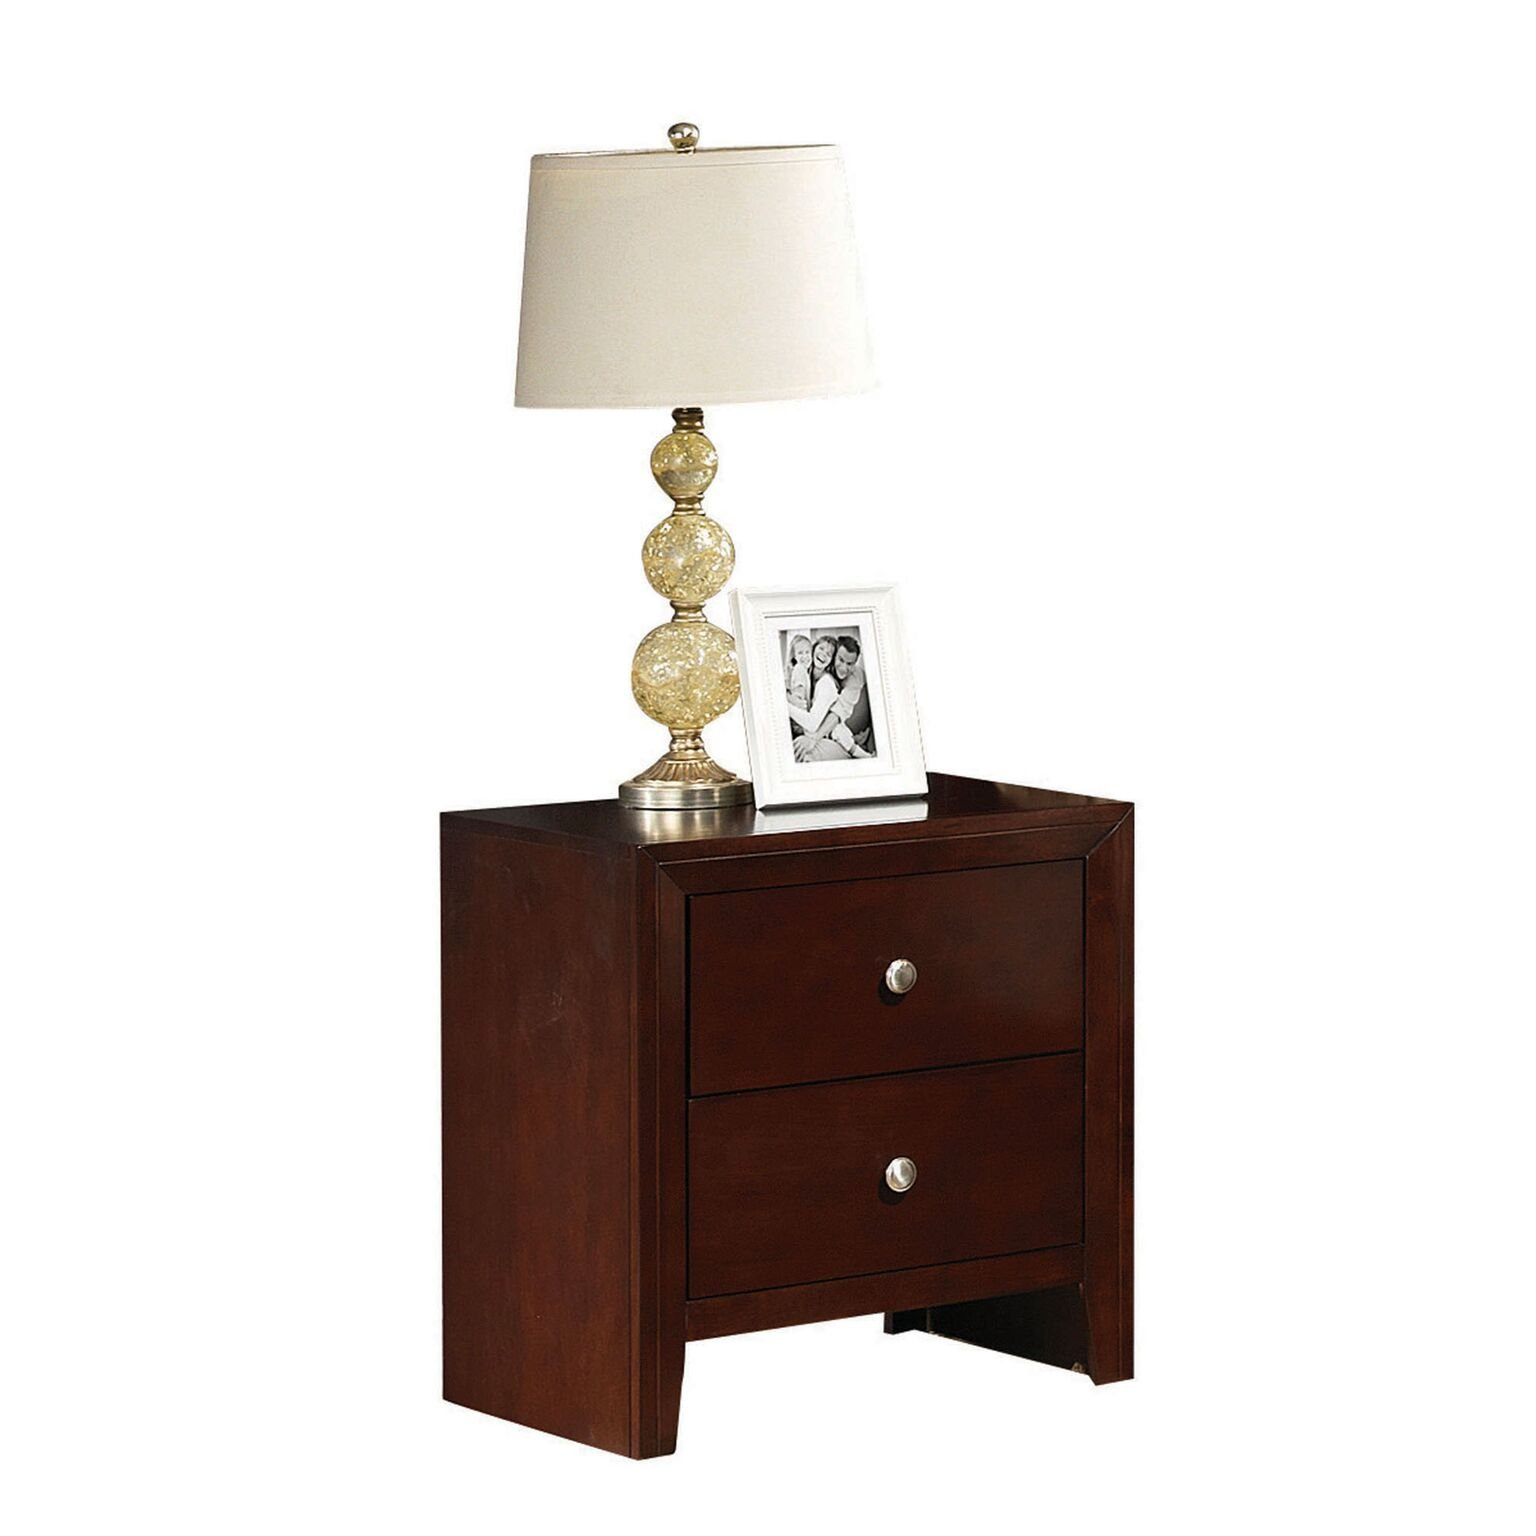 Major-Q 9020403 Brown Cherry Finish 2-Drawer Nightstand